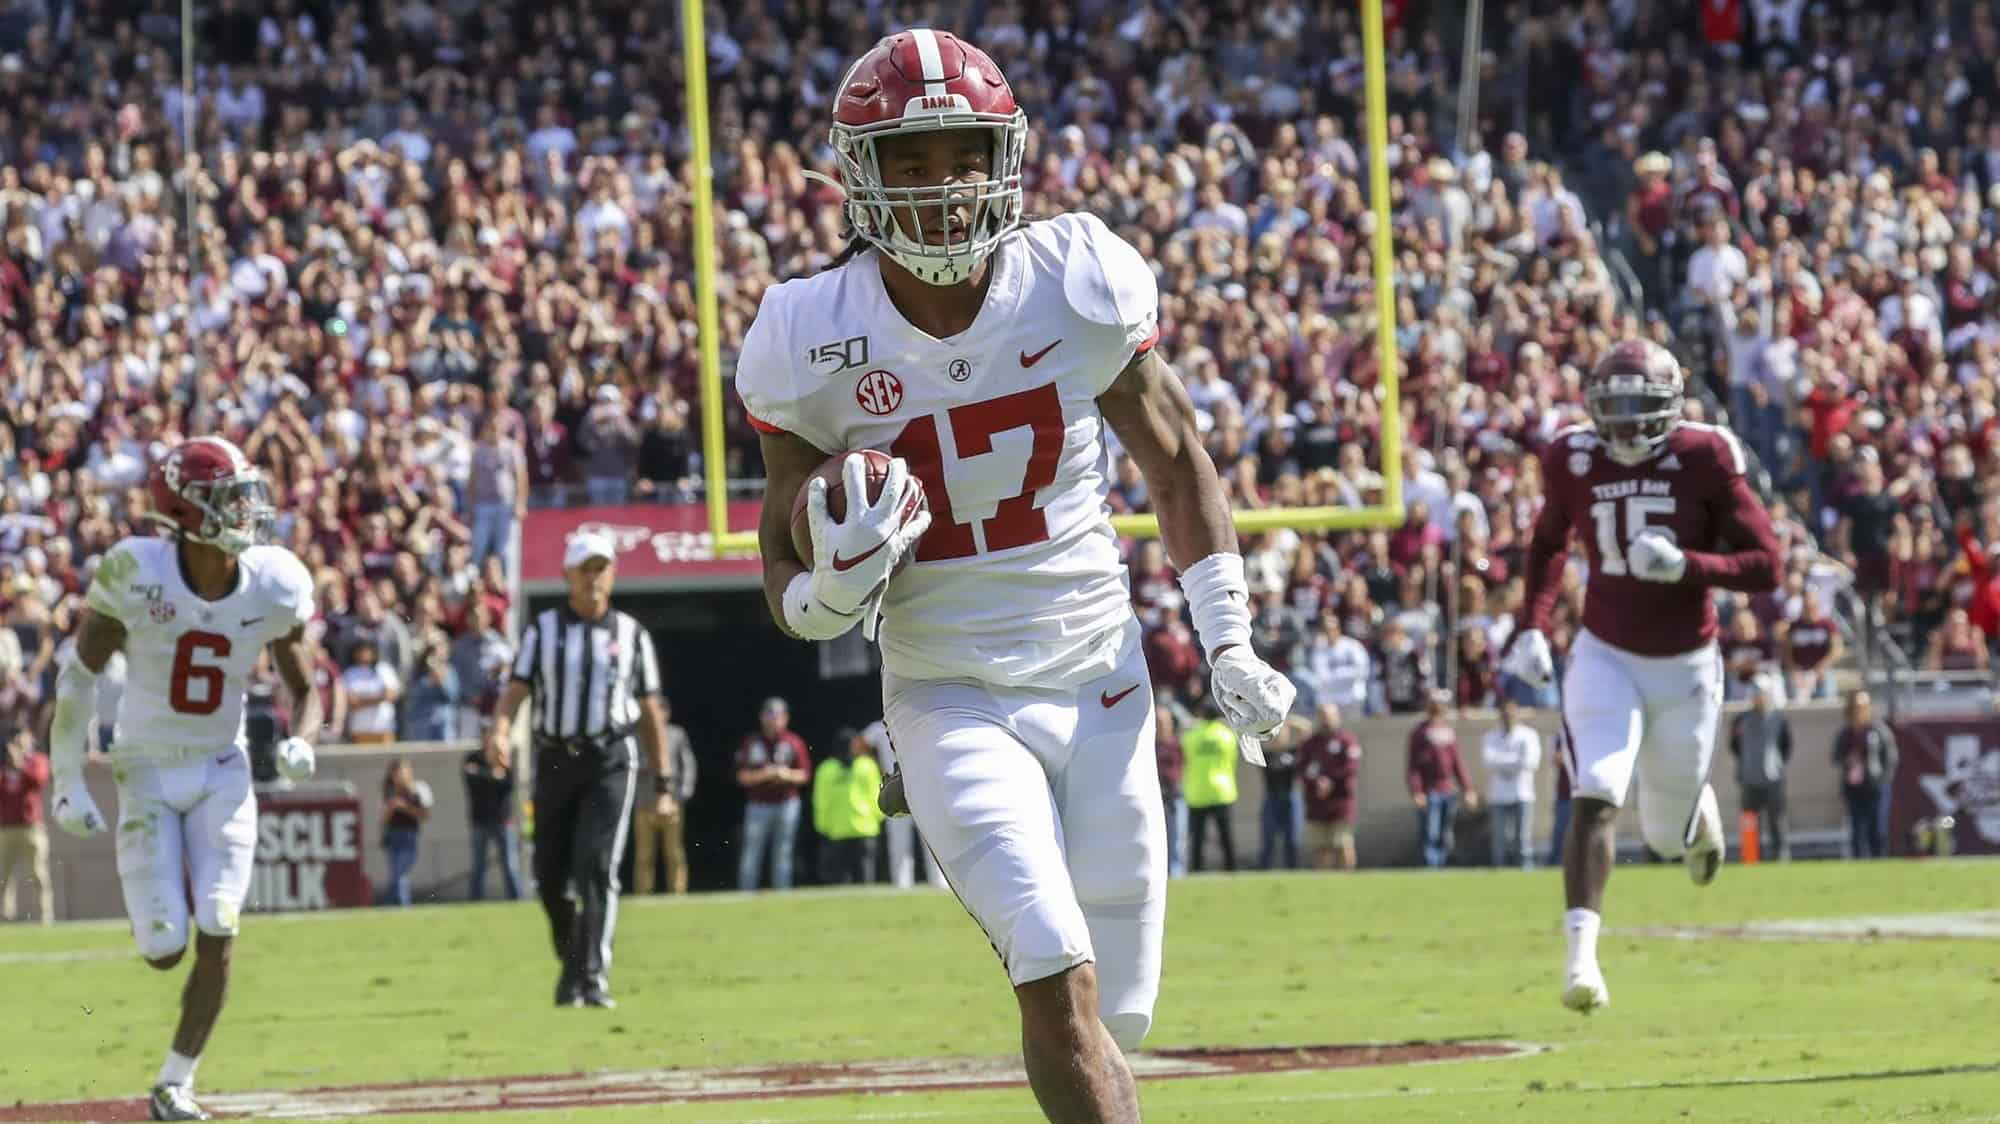 2021 NFL Draft: Who are the top Alabama Crimson Tide prospects?